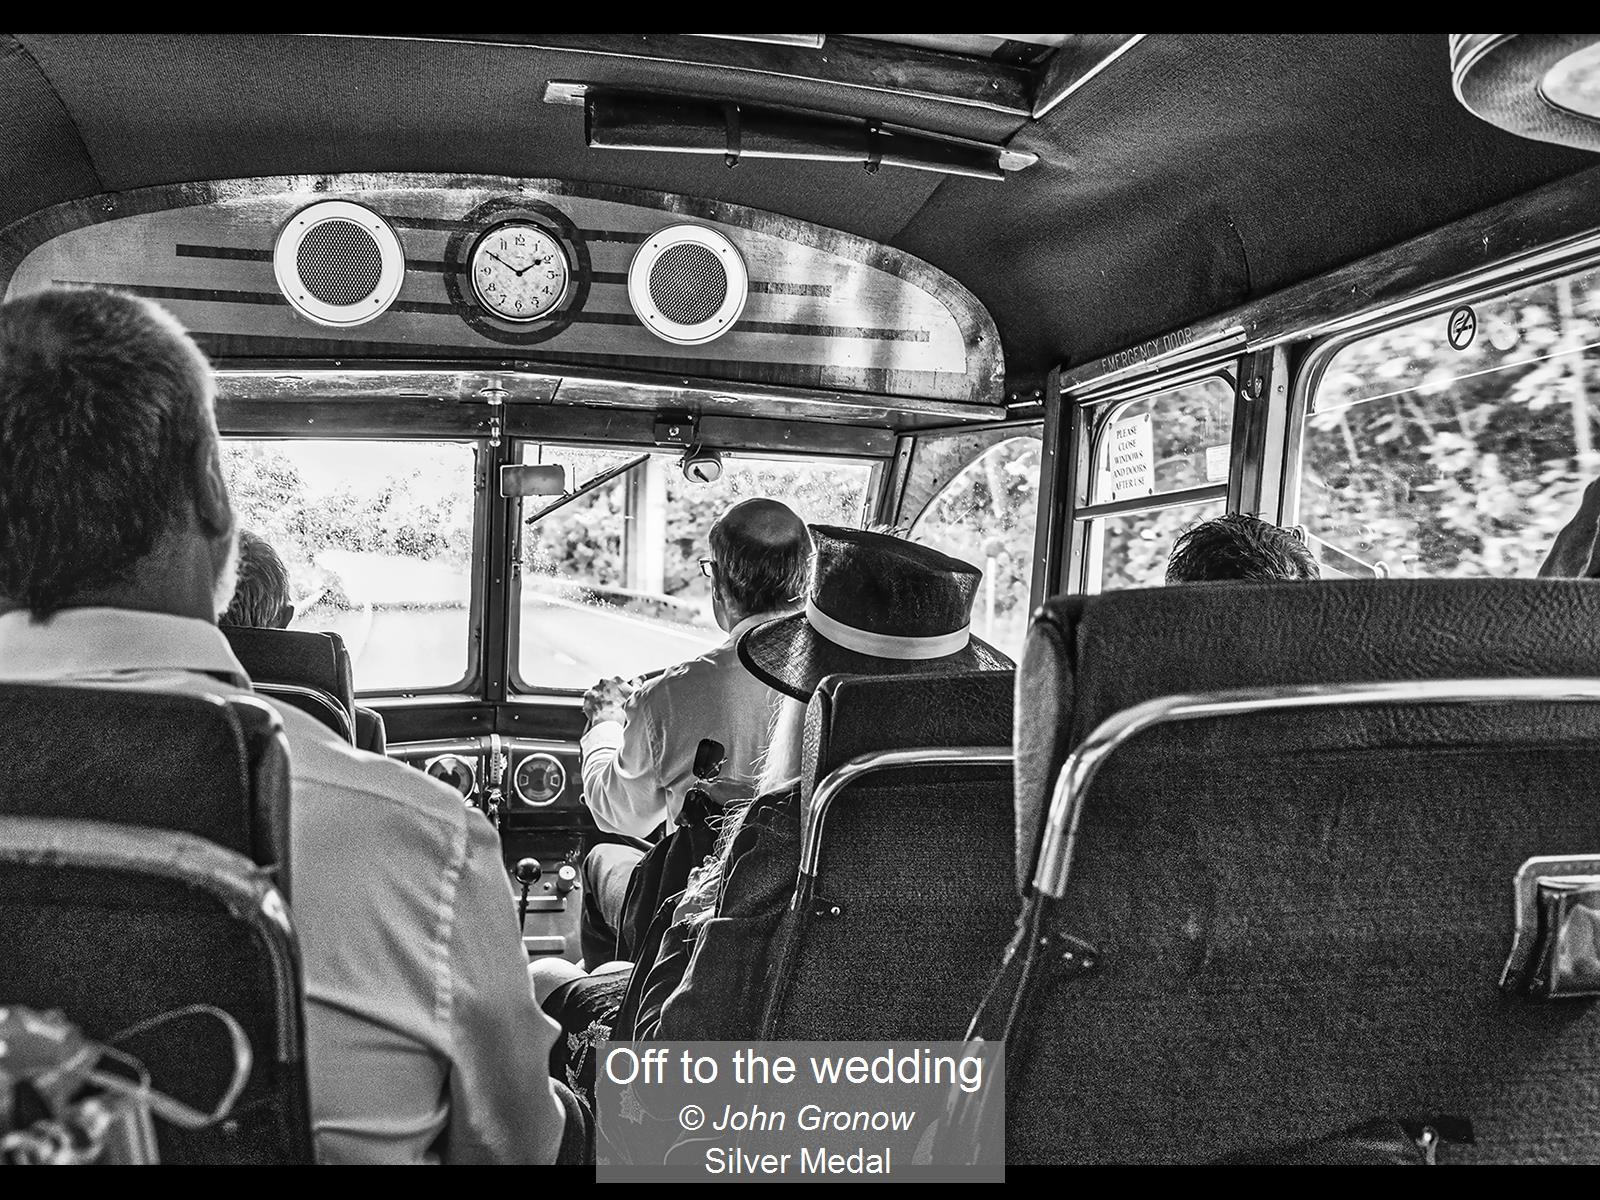 Off to the wedding_John Gronow_Silver